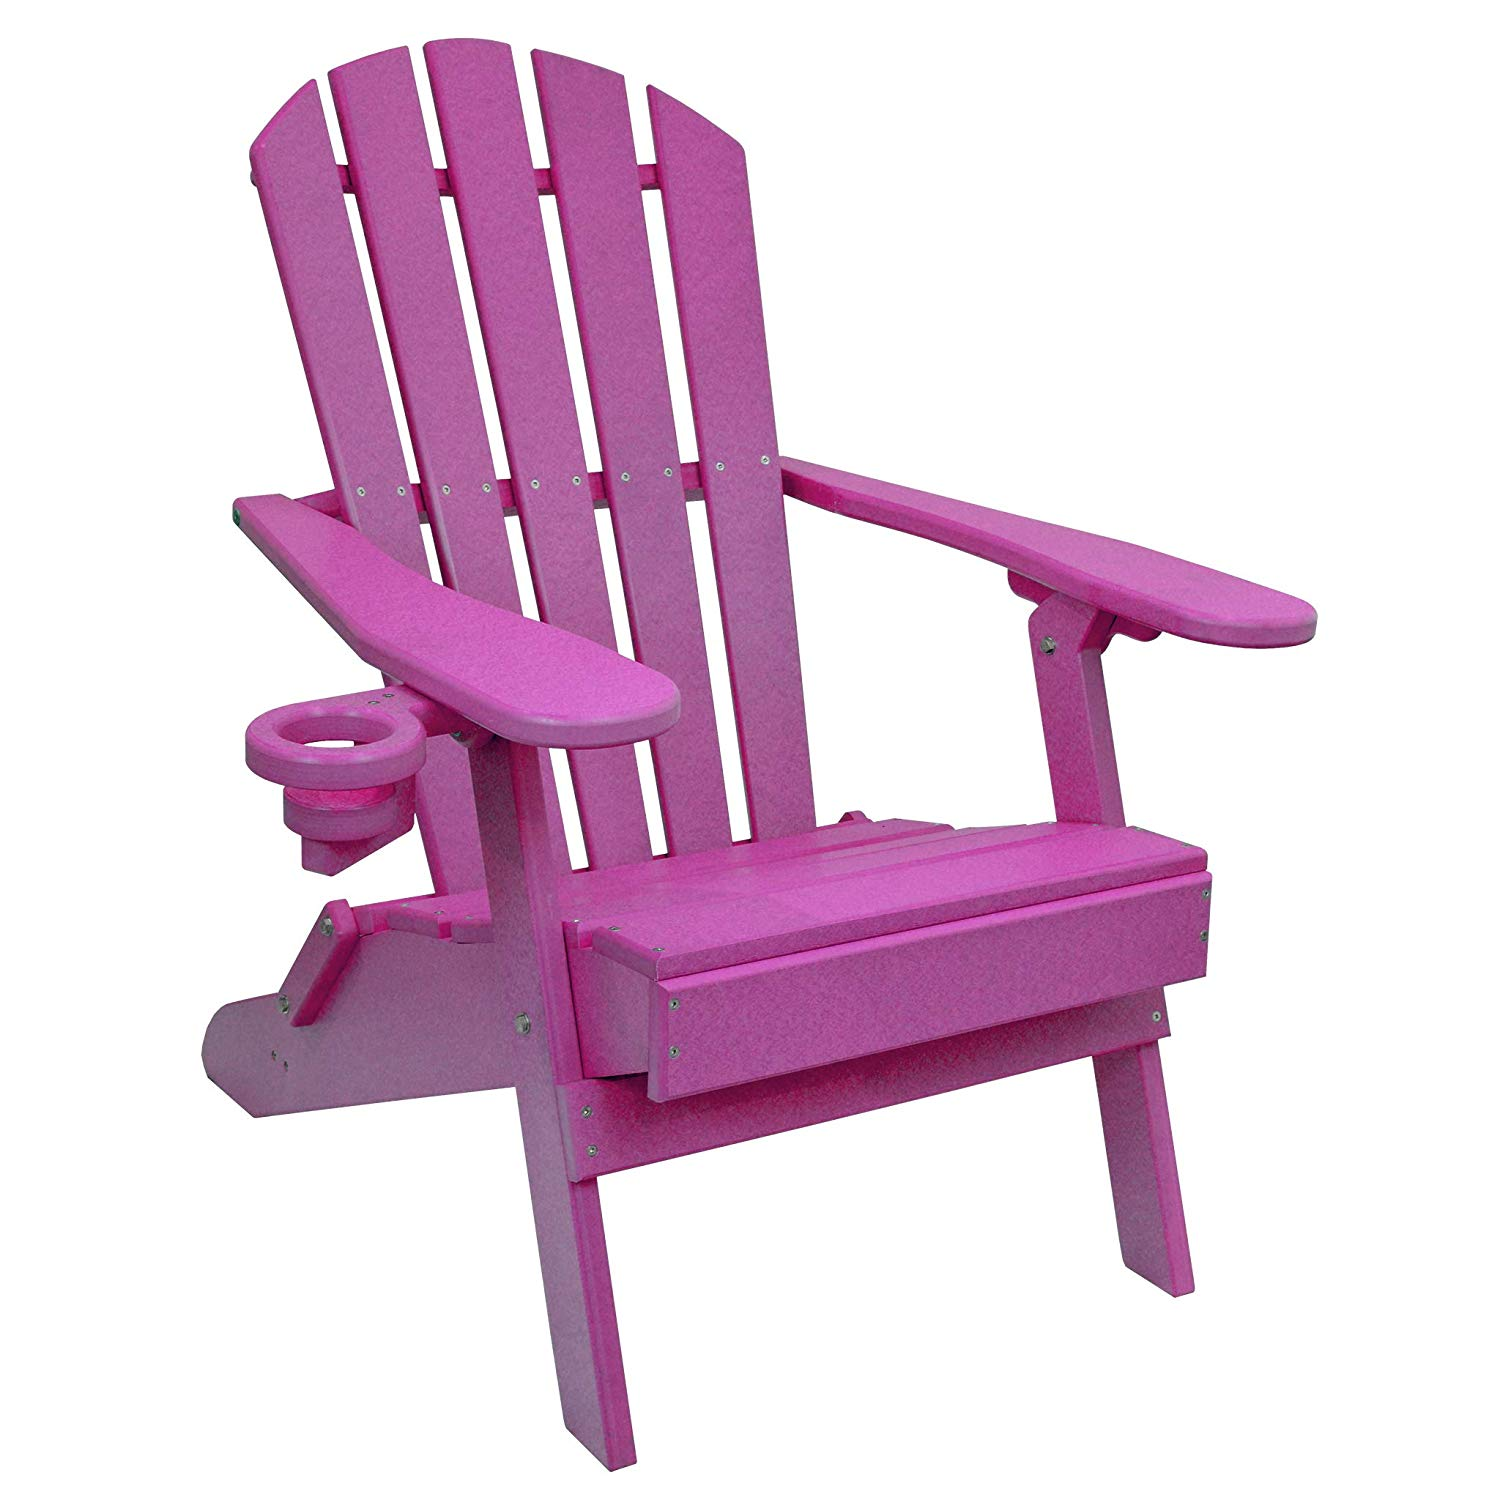 ECCB Outdoor Outer Banks Value Line Adirondack Chairs ...